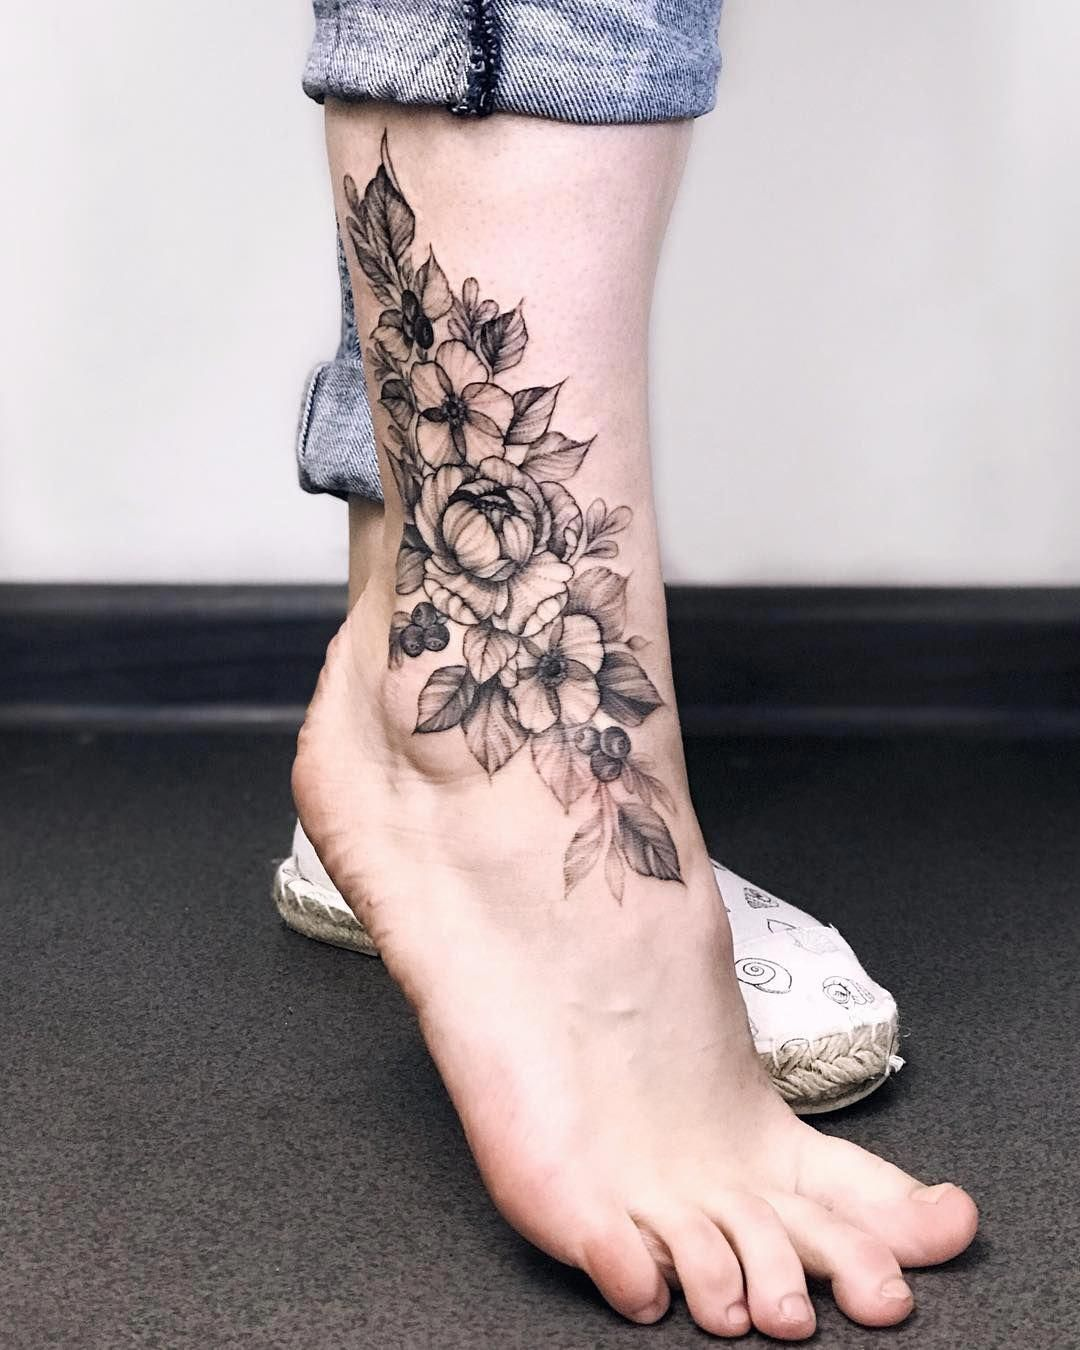 Colorful Foot Tattoos Foottattoos Leg Tattoos Women Foot Tattoo Foot Tattoos For Women